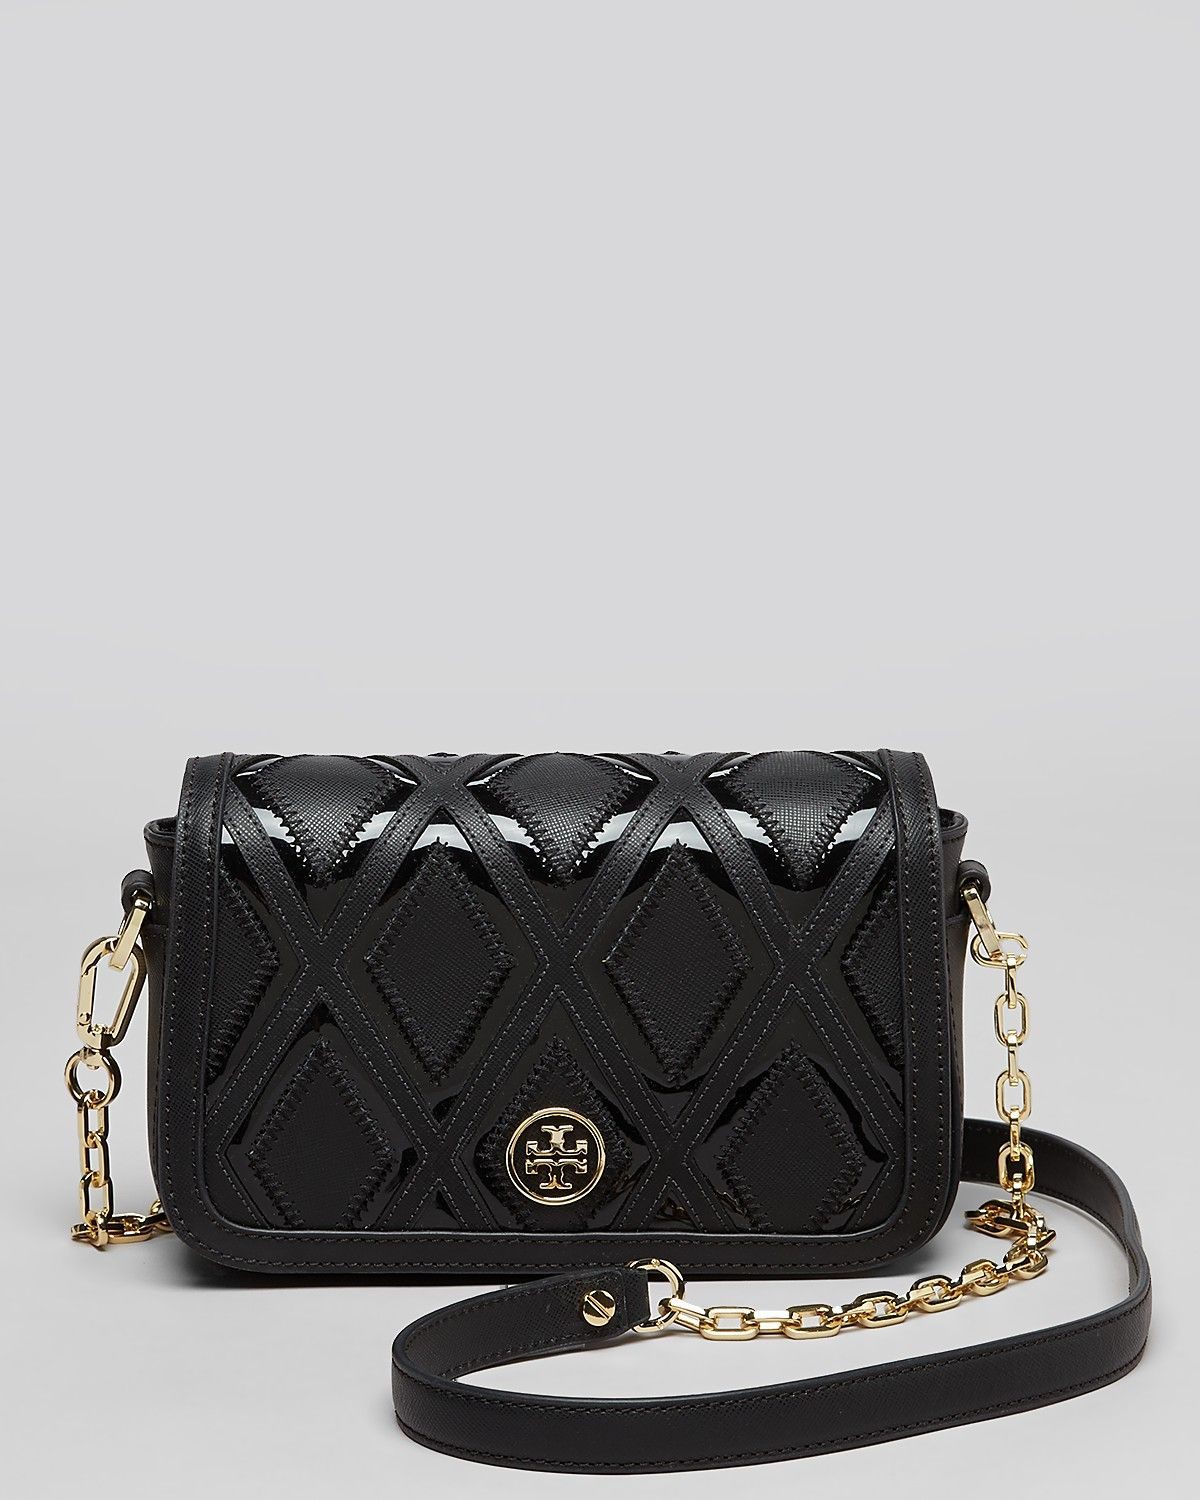 6850962bb19d Tory Burch Shoulder Bag - Robinson Patchwork Mini Chain ...